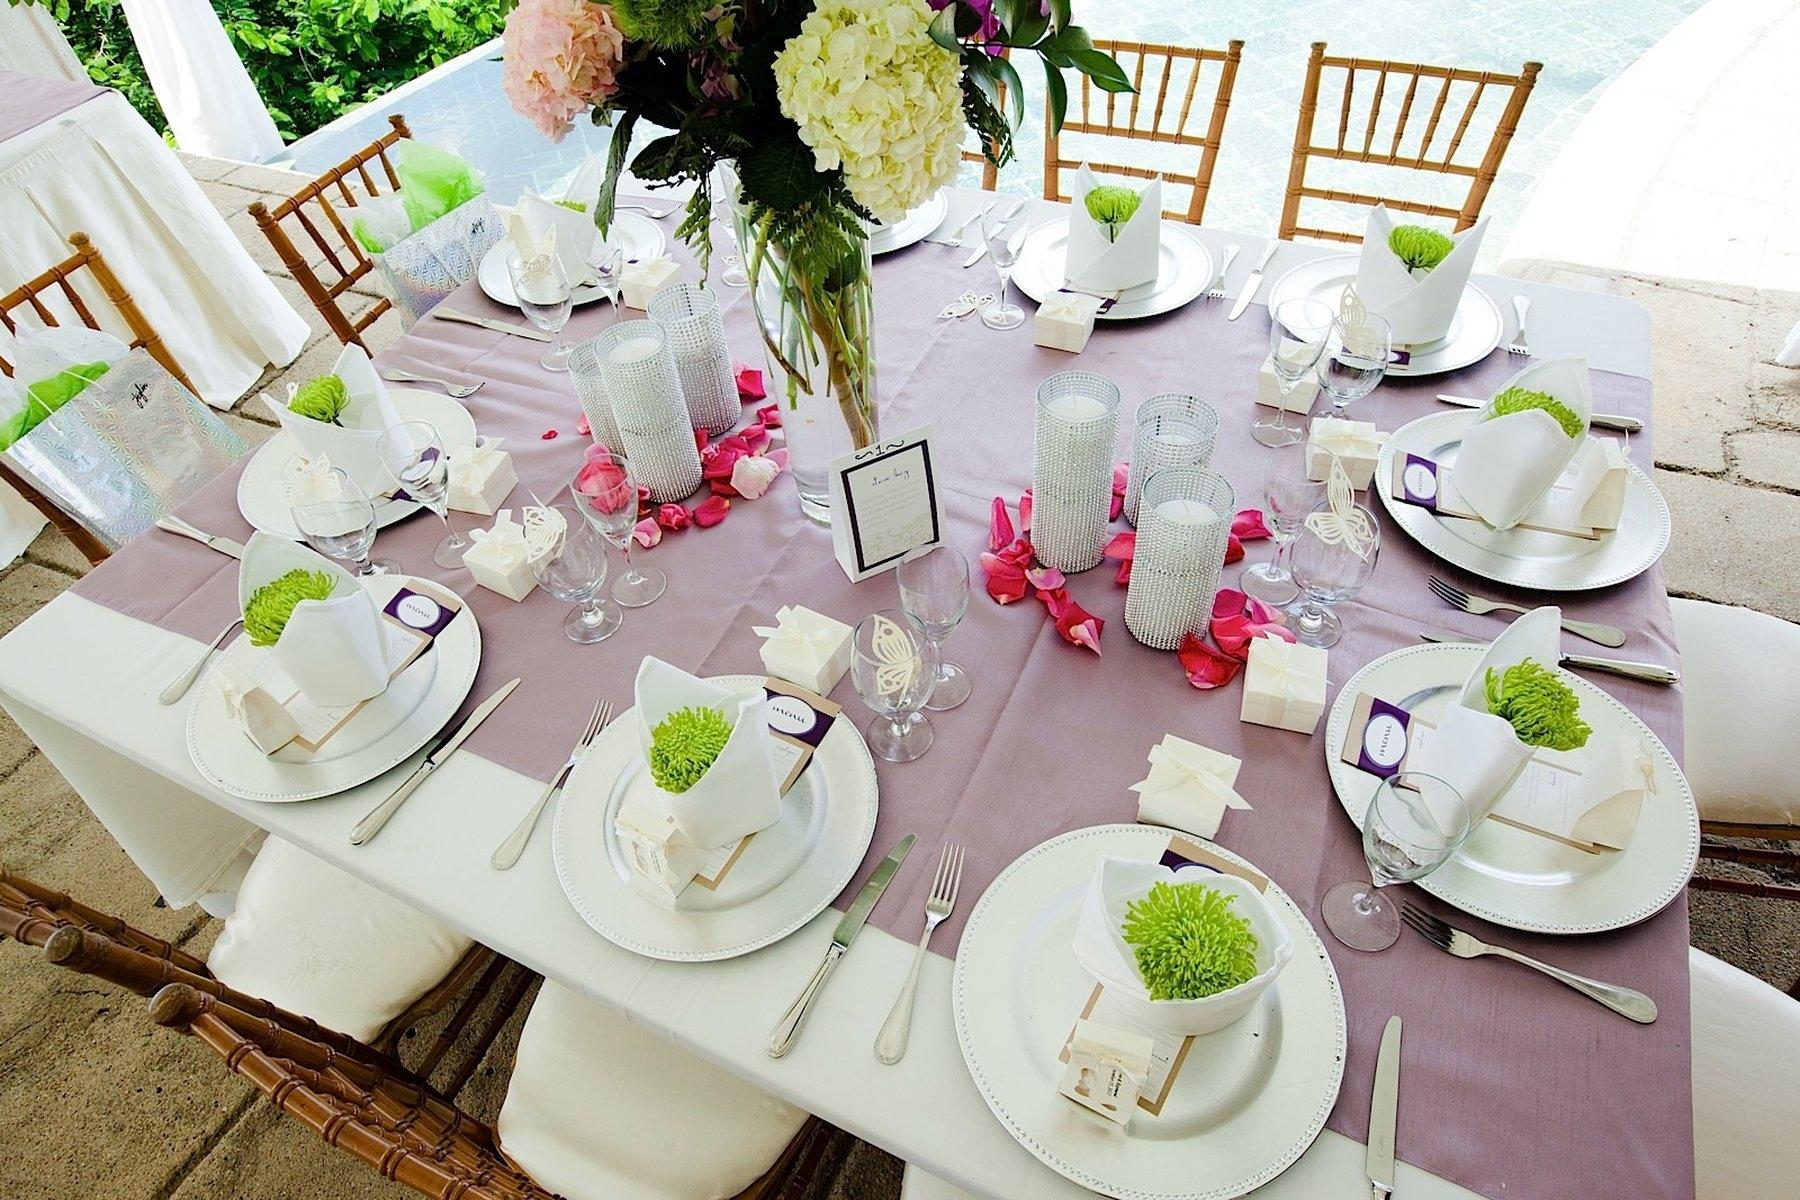 Large table set for wedding guests